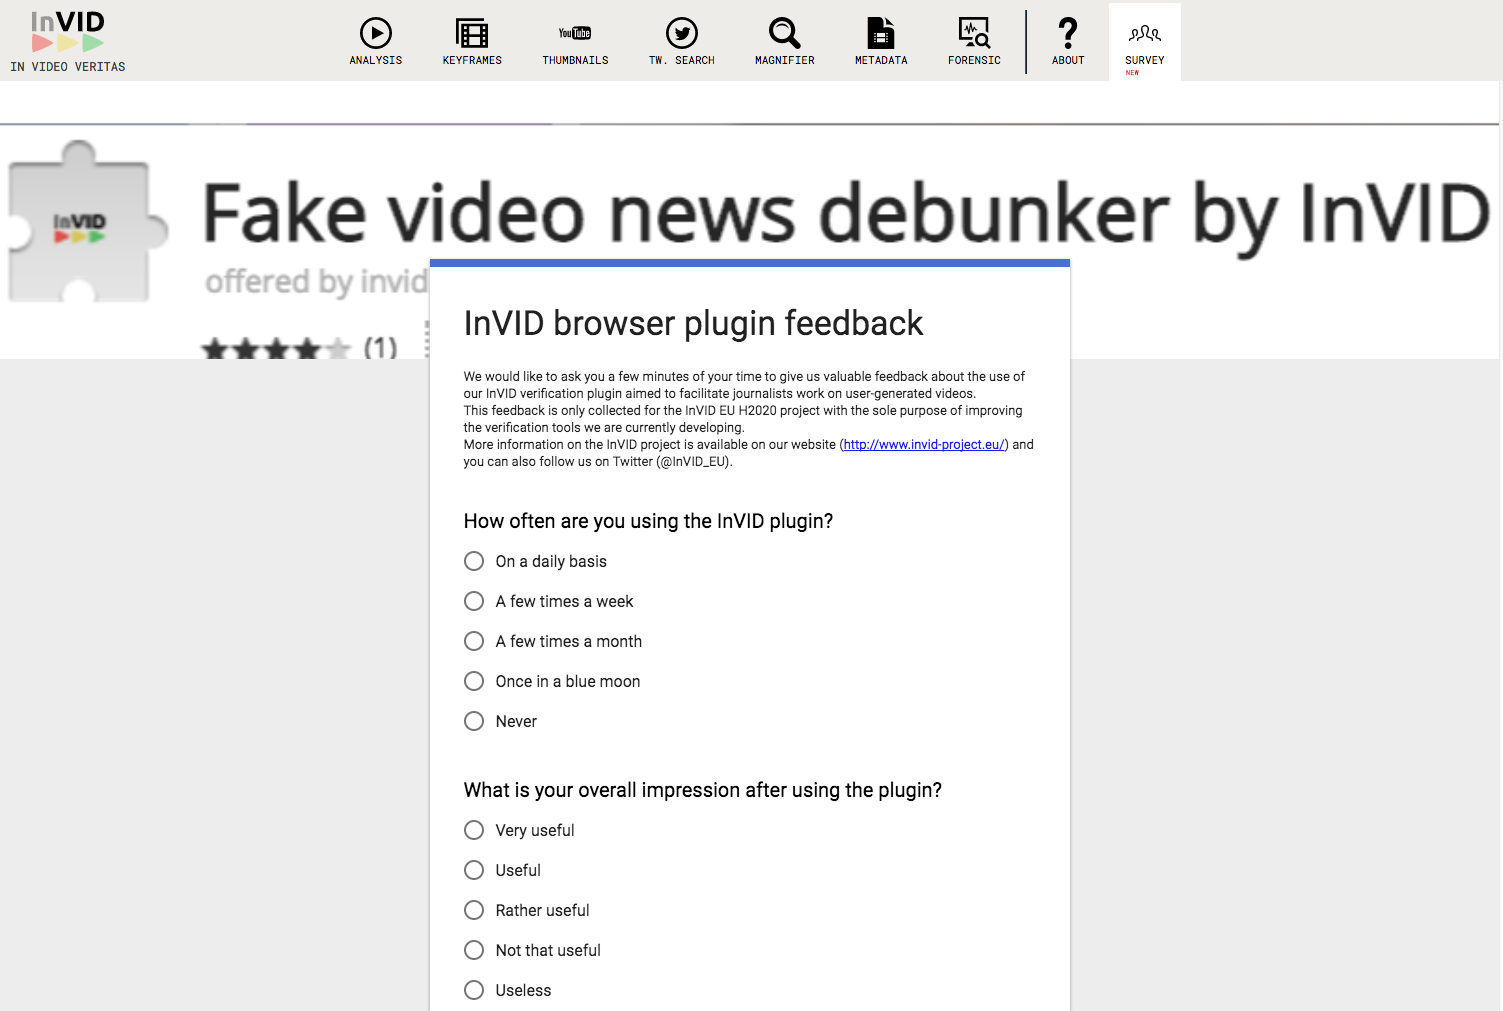 The integrated survey about the use of the InVID Verification Plugin